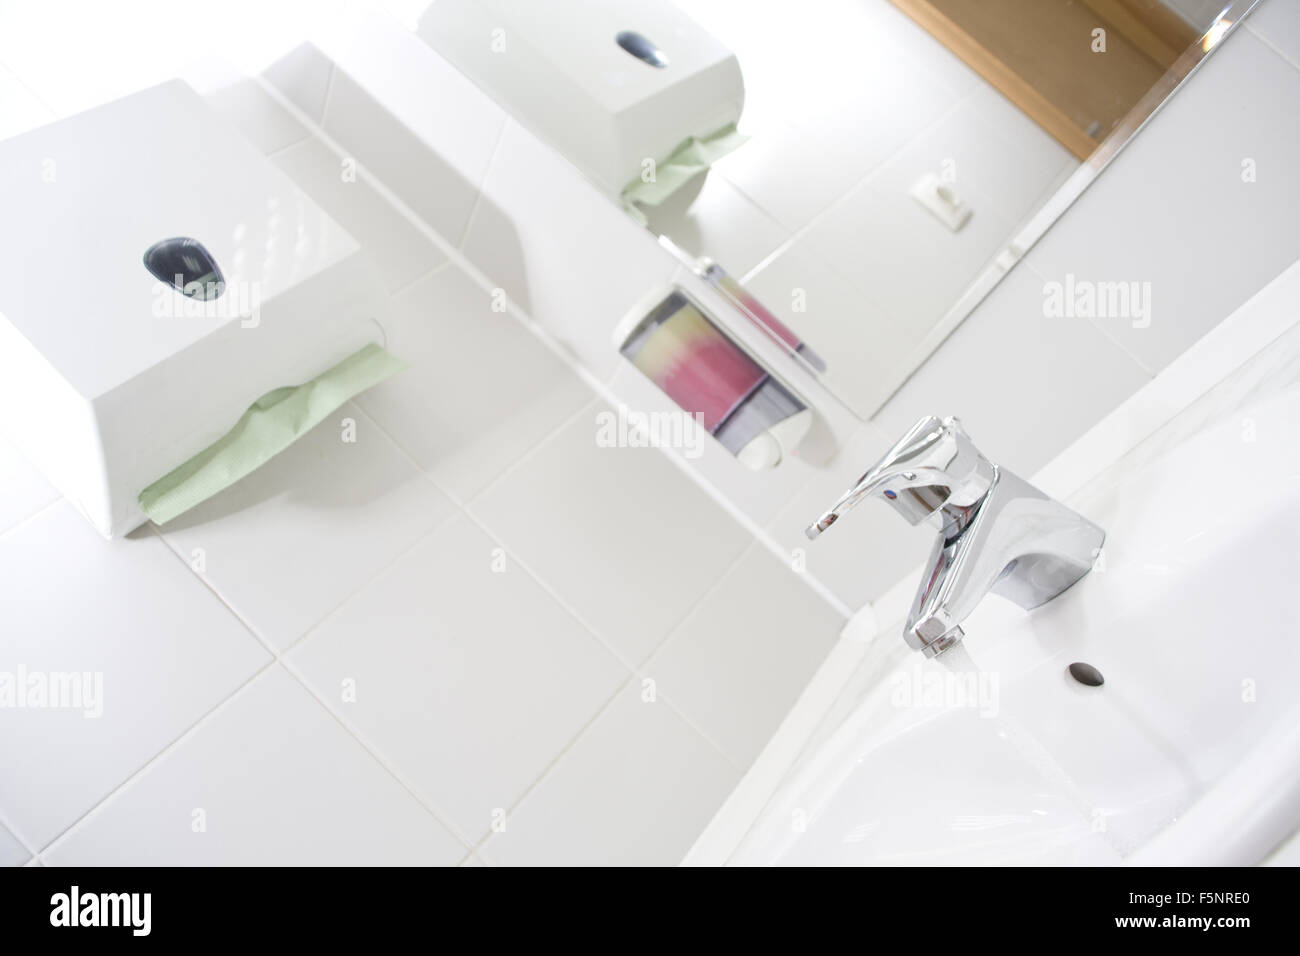 Public Toilet Sink And Faucet Stock Photo 89604536 Alamy